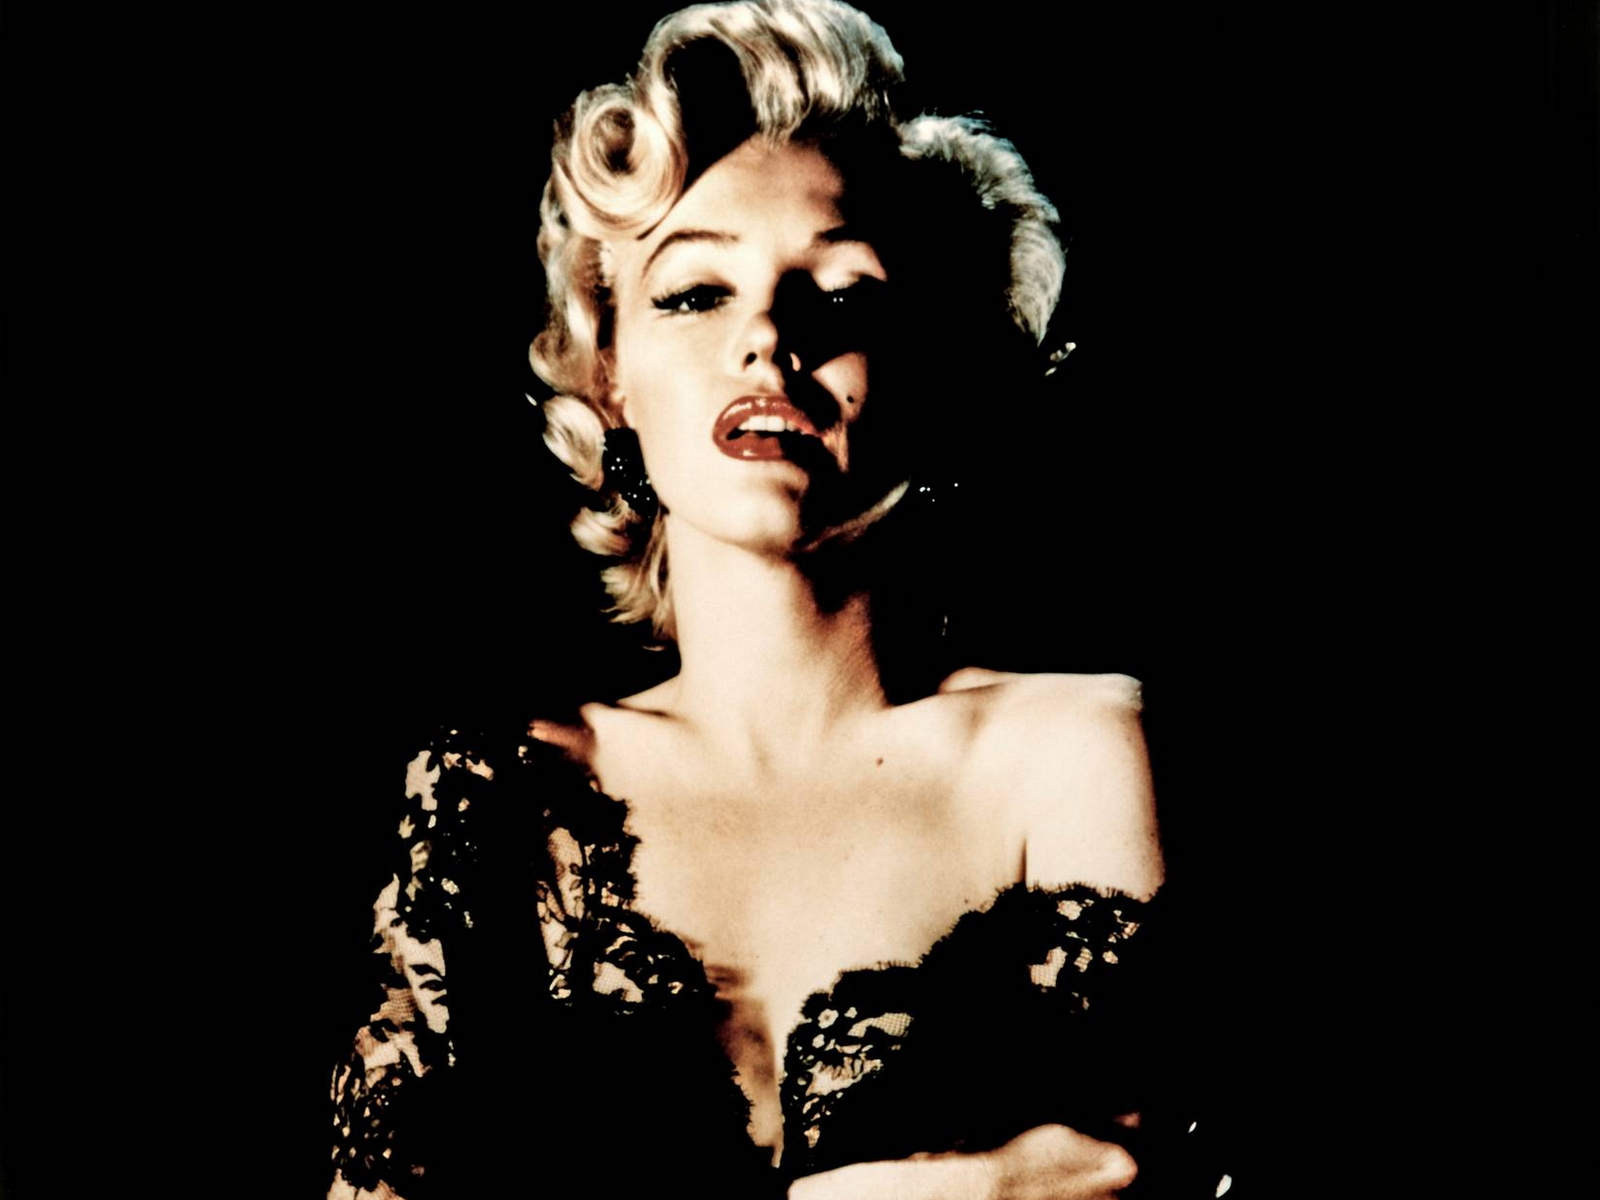 celebrities iphone wallpapers: marilyn monroe iphone wallpapers